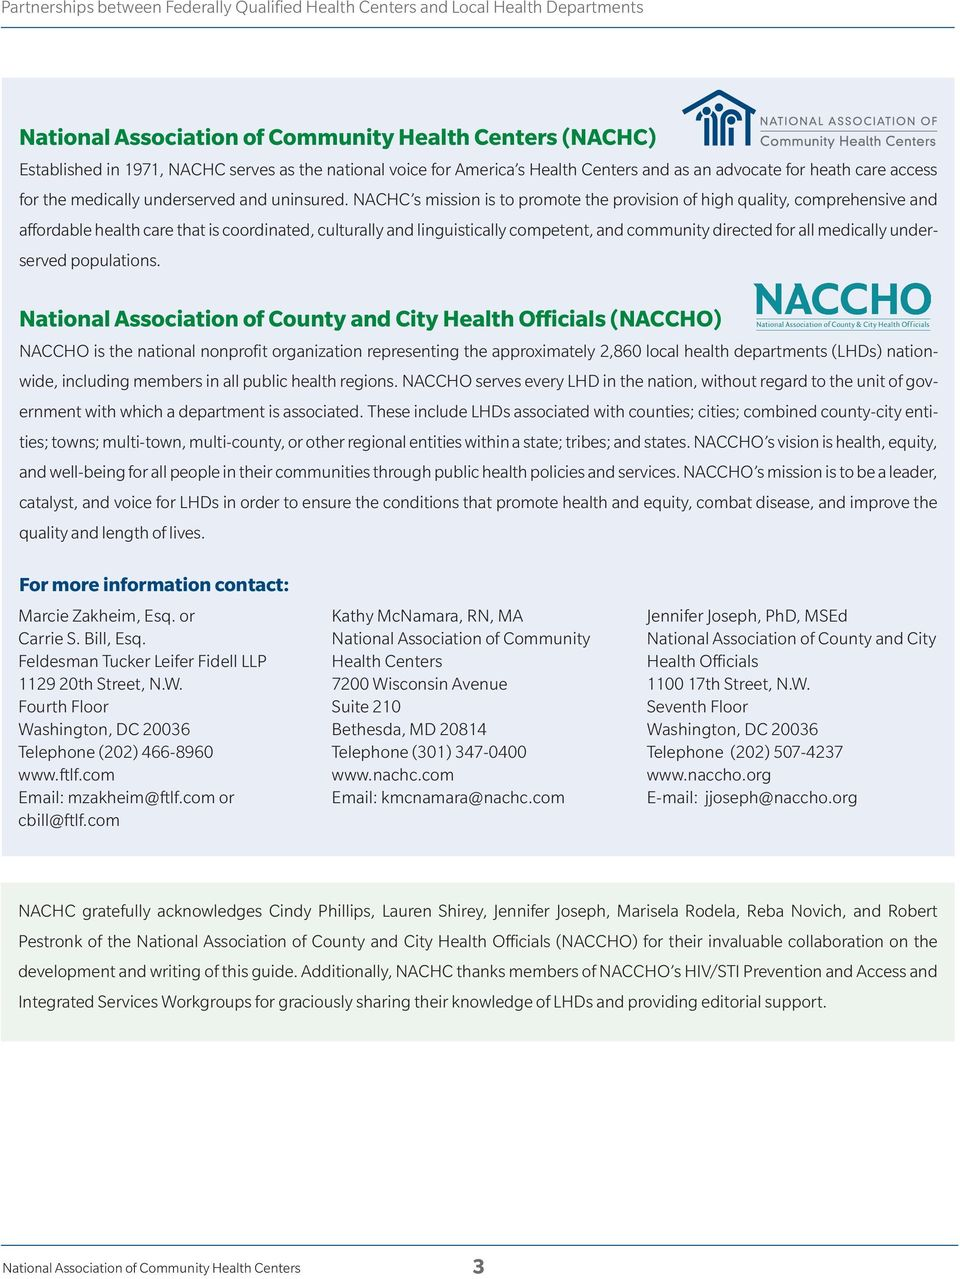 NACHC s missio is to promote the provisio of high quality, comprehesive ad affordable health care that is coordiated, culturally ad liguistically competet, ad commuity directed for all medically